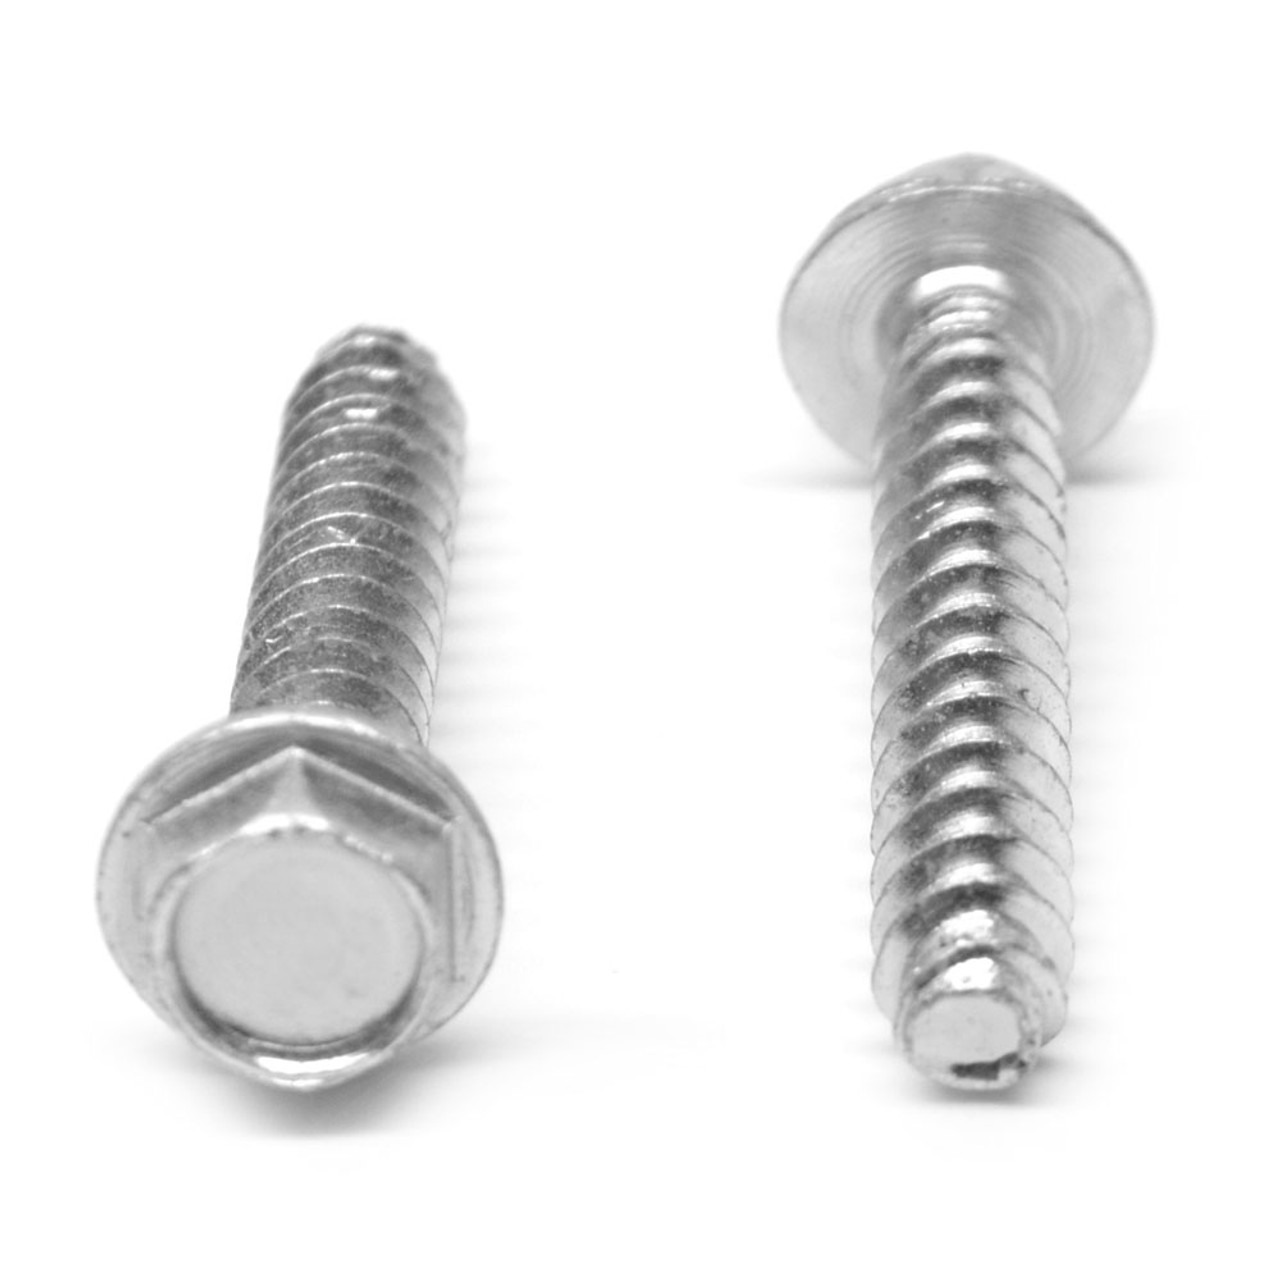 """12 Pieces of 1//4/"""" 20 x 2/"""" Zinc Plated Hex Cap Screw and 12 Pieces 1//4/"""" Nuts"""